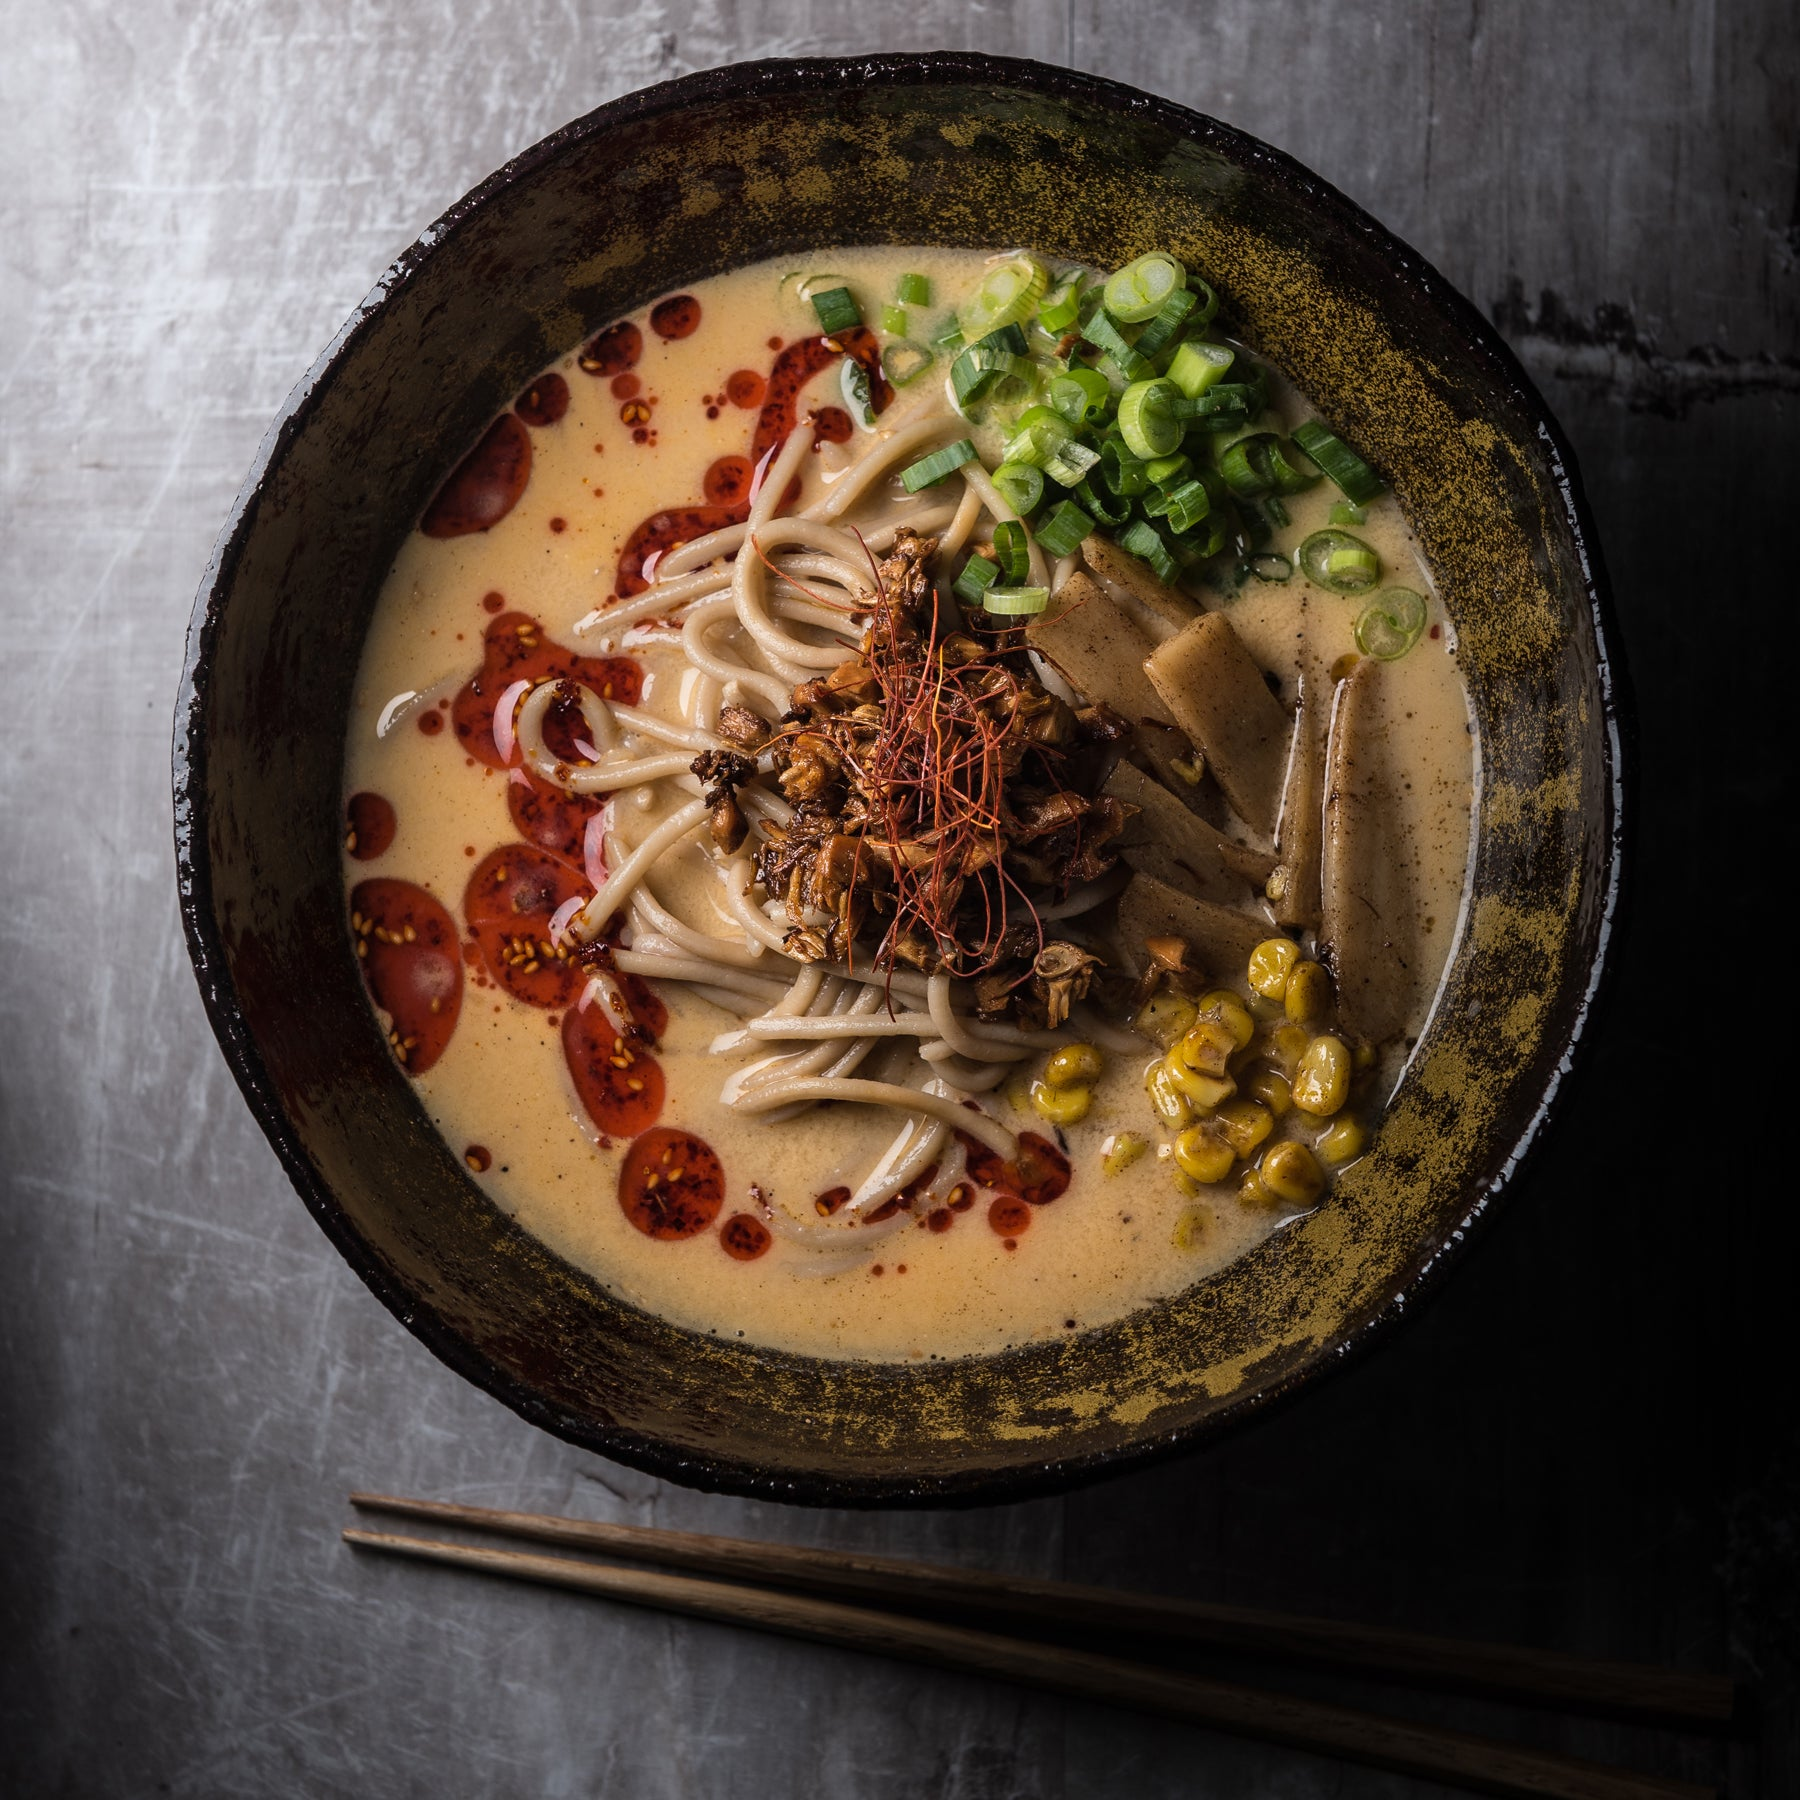 A bowl of vegan ramen, shot from above on a table